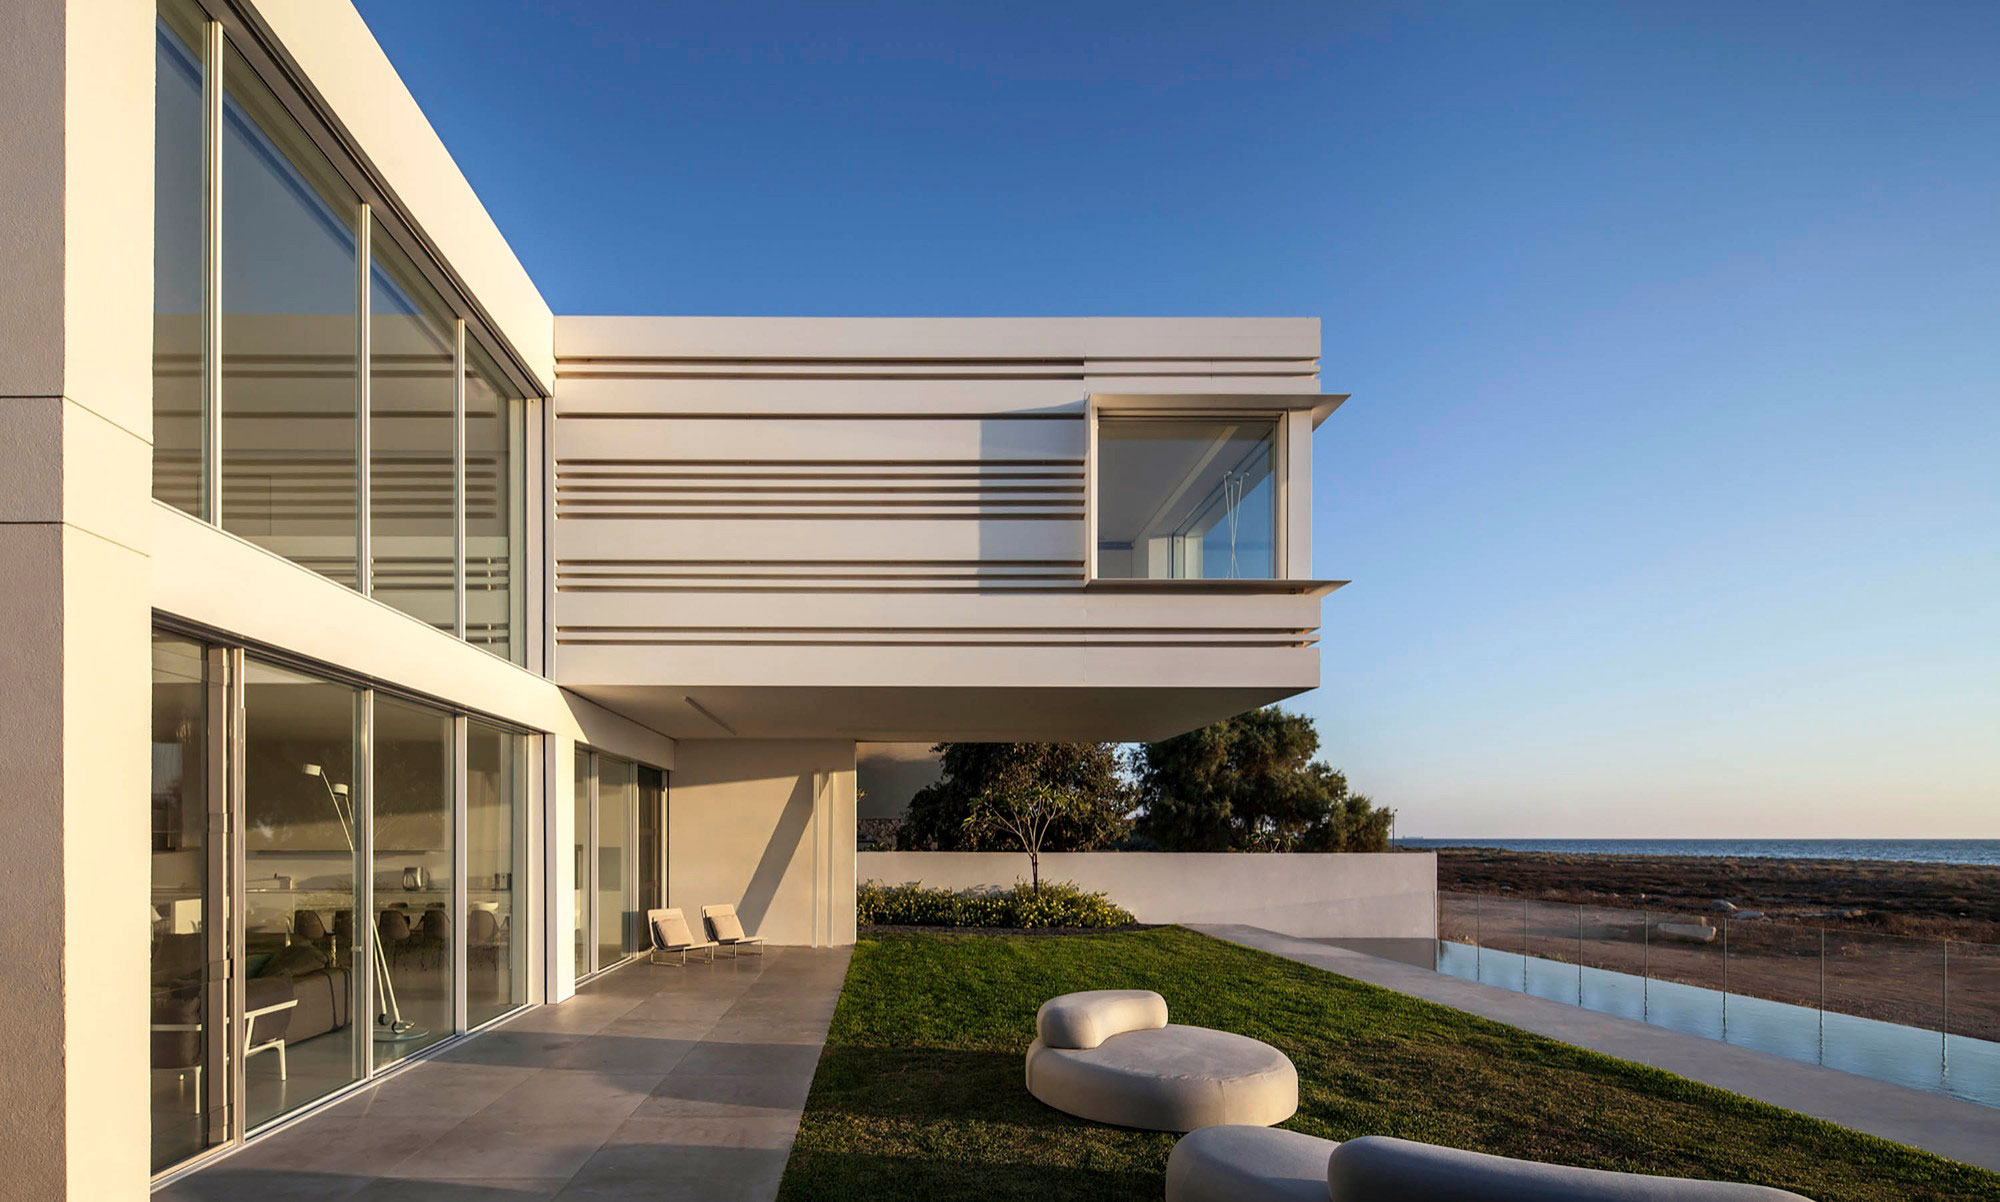 Luminous A House by the Sea home with Mediterranean Sea views by Pitsou Kedem Architects-21